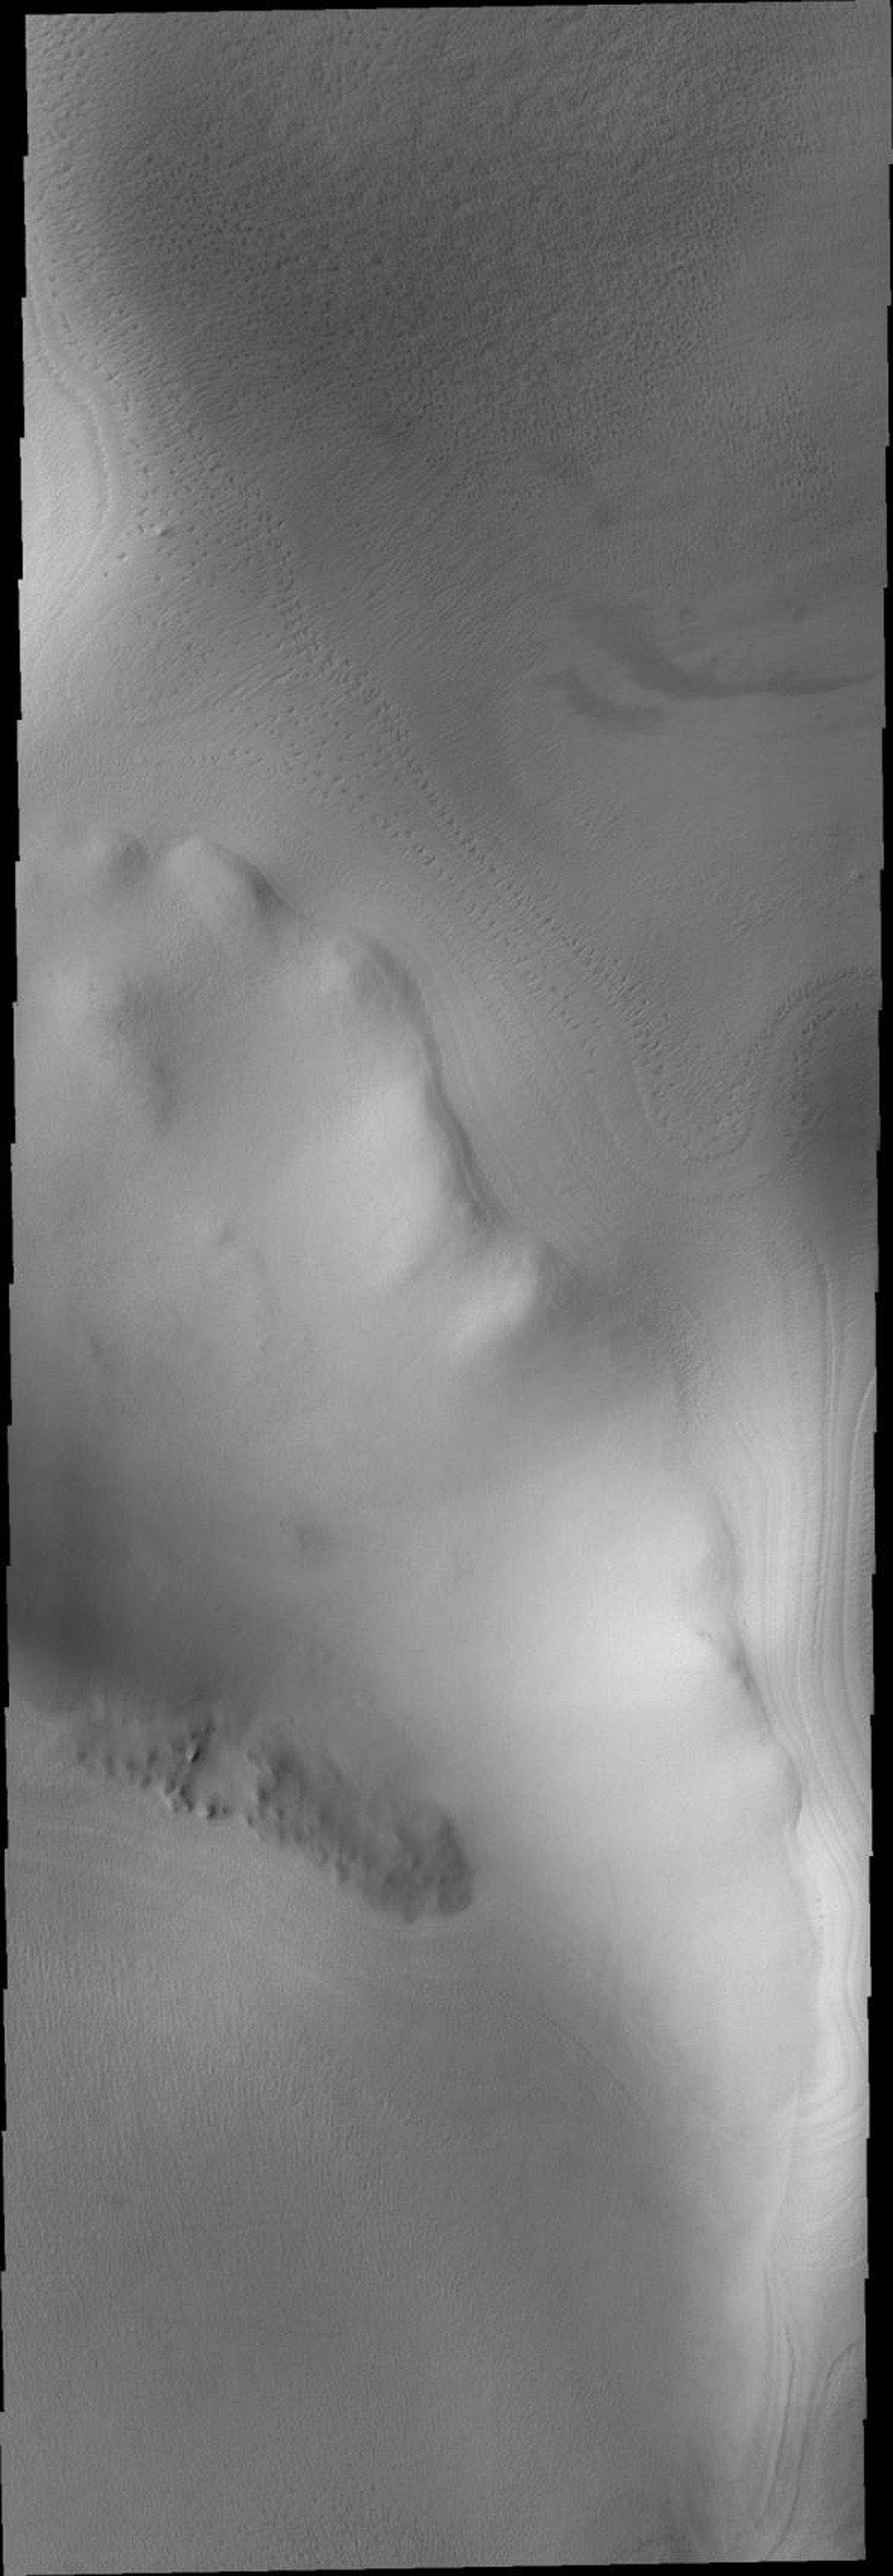 This image from NASA's Mars Odyssey shows Mars' unusual polar texture resembling bird tracks in snow that developed during summer heating.